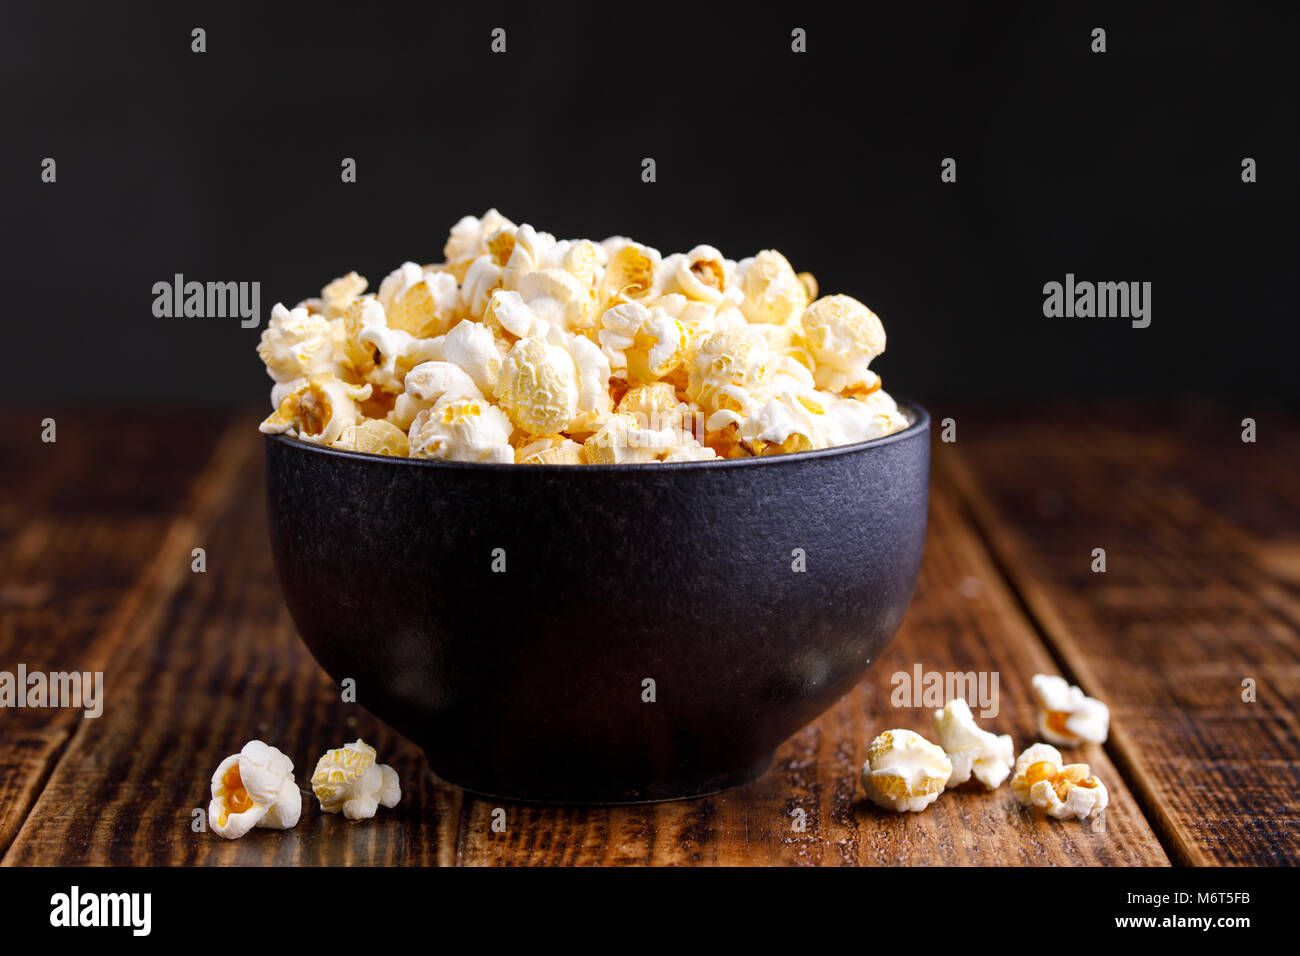 A bowl with popcorn on a wooden background. - Stock Image